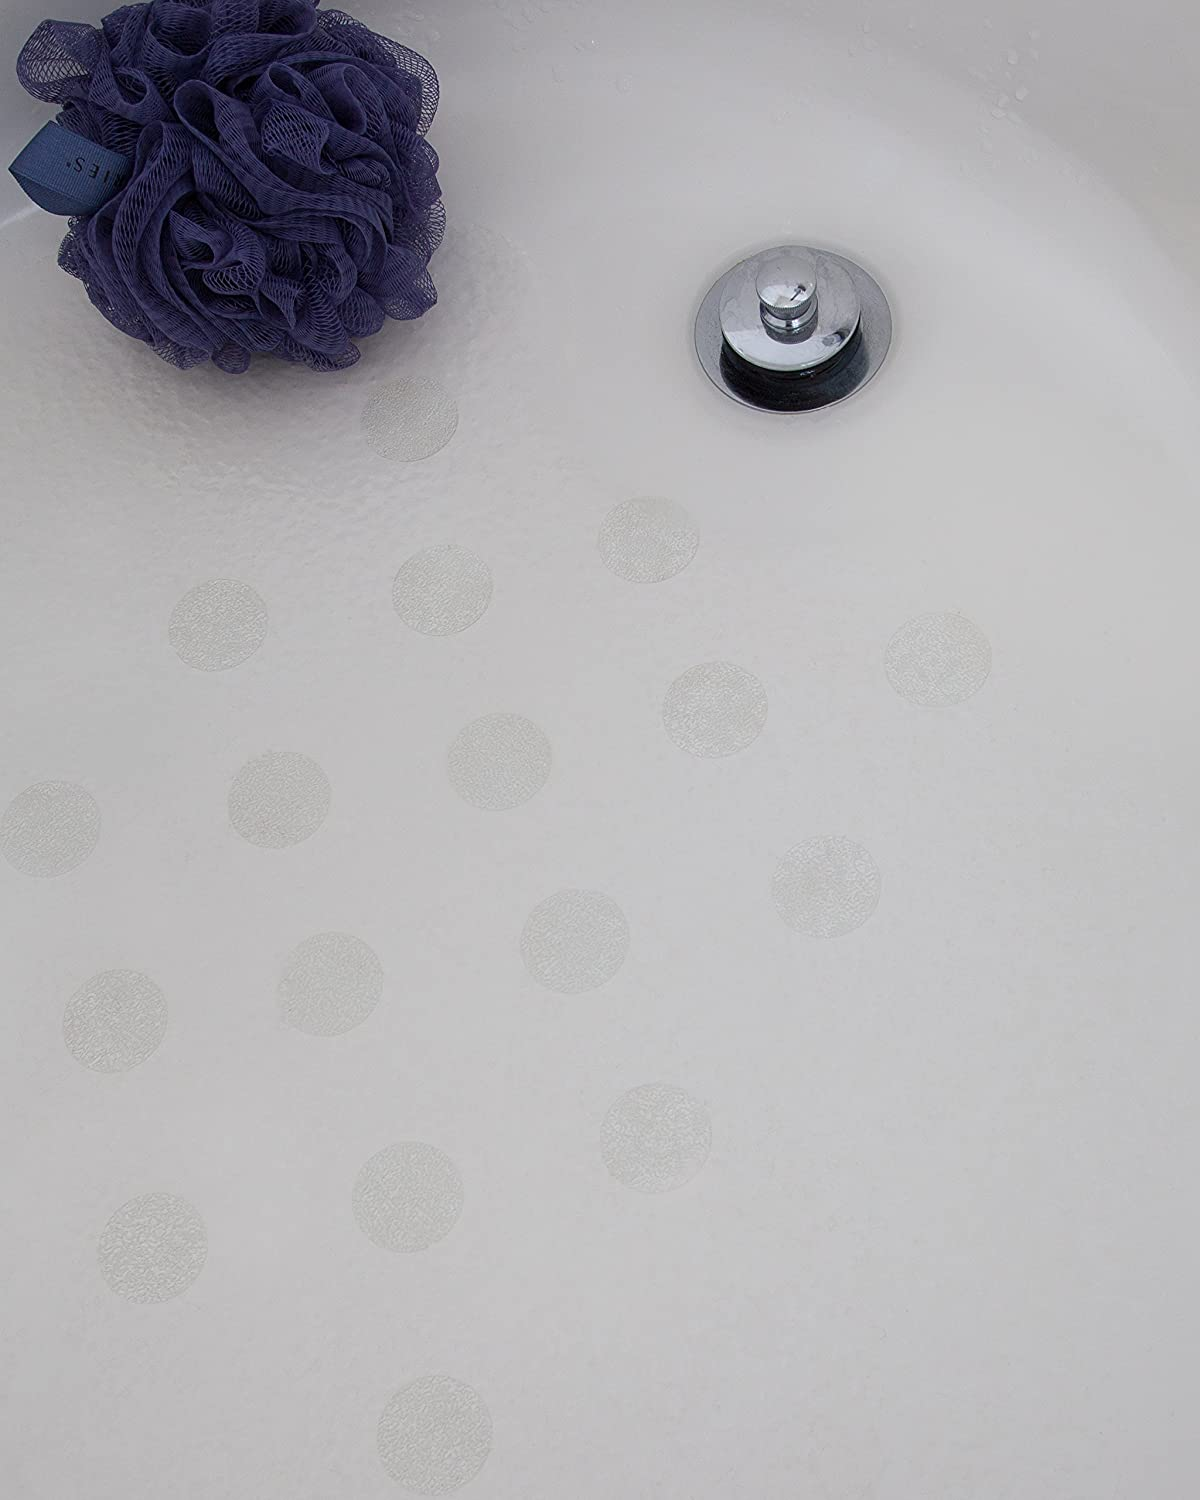 Clear Non Slip Stickers for Tubs and Showers Anti-slip Discs